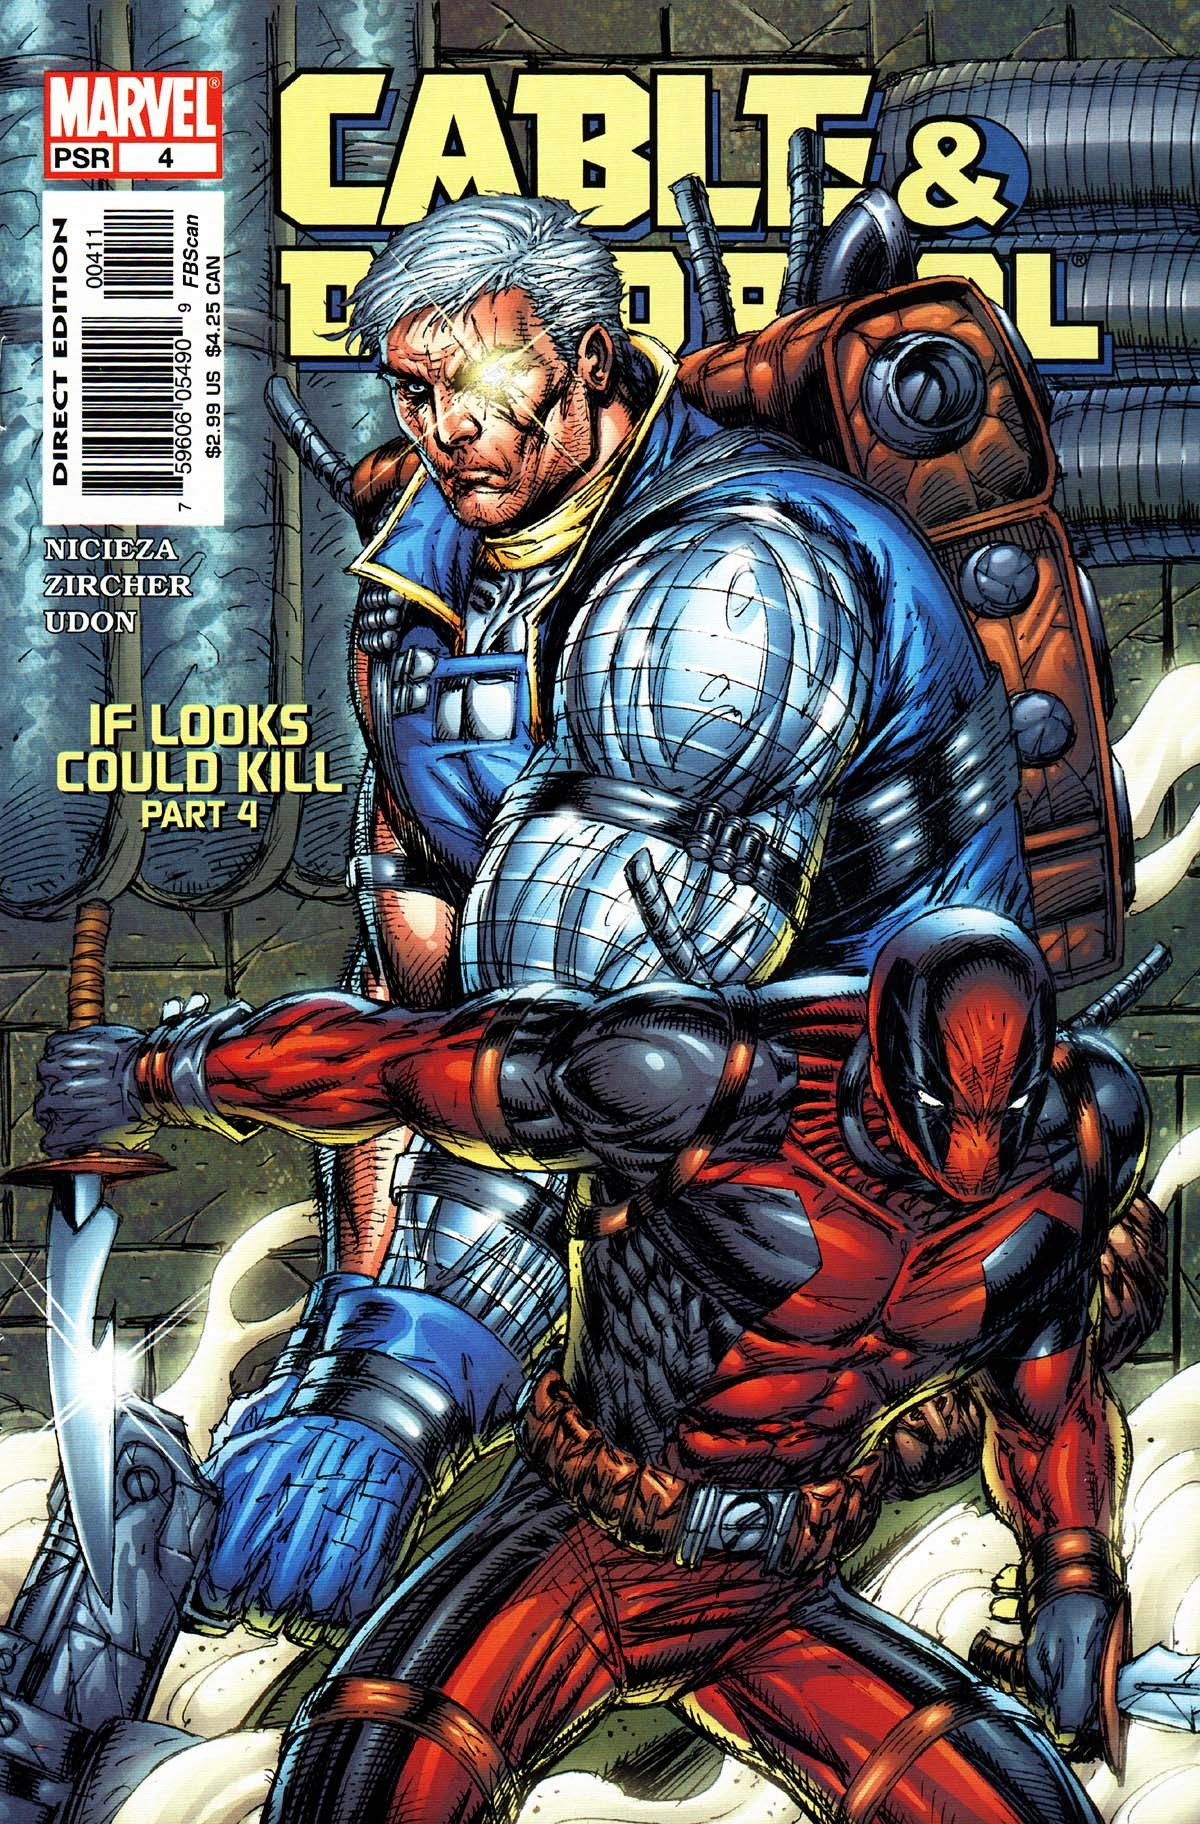 comicbookcovers:  Cable And Deadpool #4, August 2004, cover by Rob Liefeld